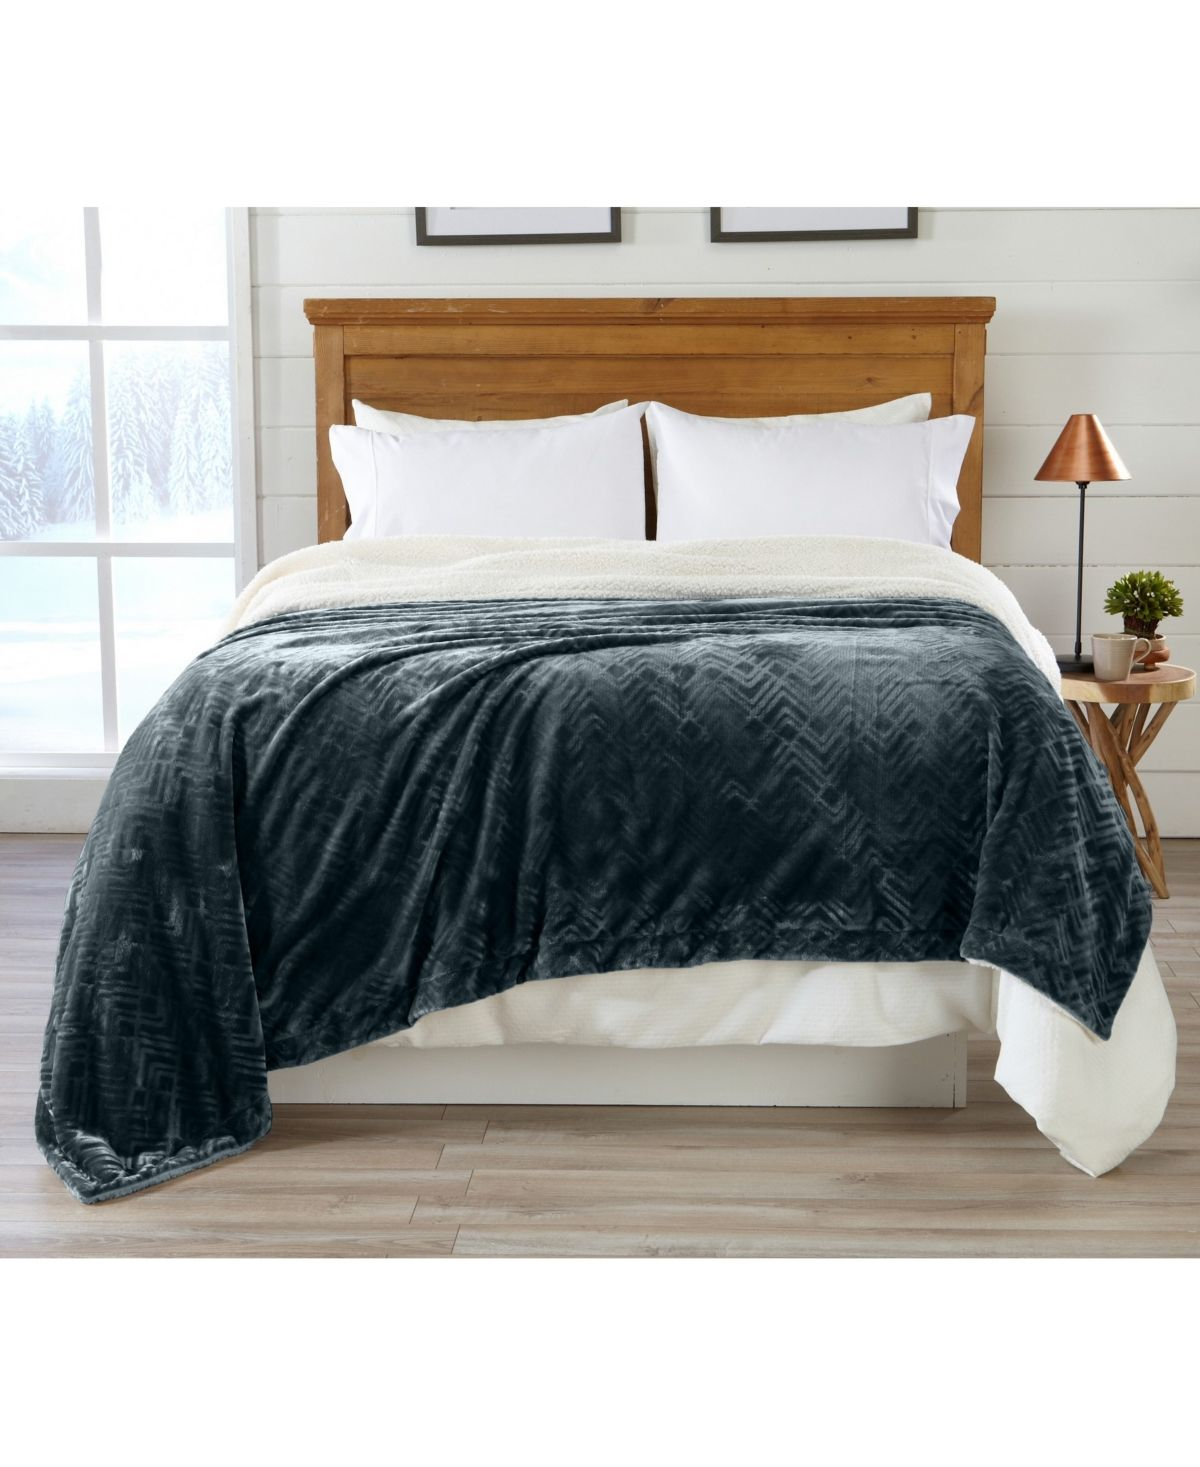 Home Fashion Designs Home Fashions Designs Berber Velvet Plush Luxury King Bed Blanket Reviews Blankets Throws Bed Bath Macy S Luxury Blanket House Styles Luxury King Bed